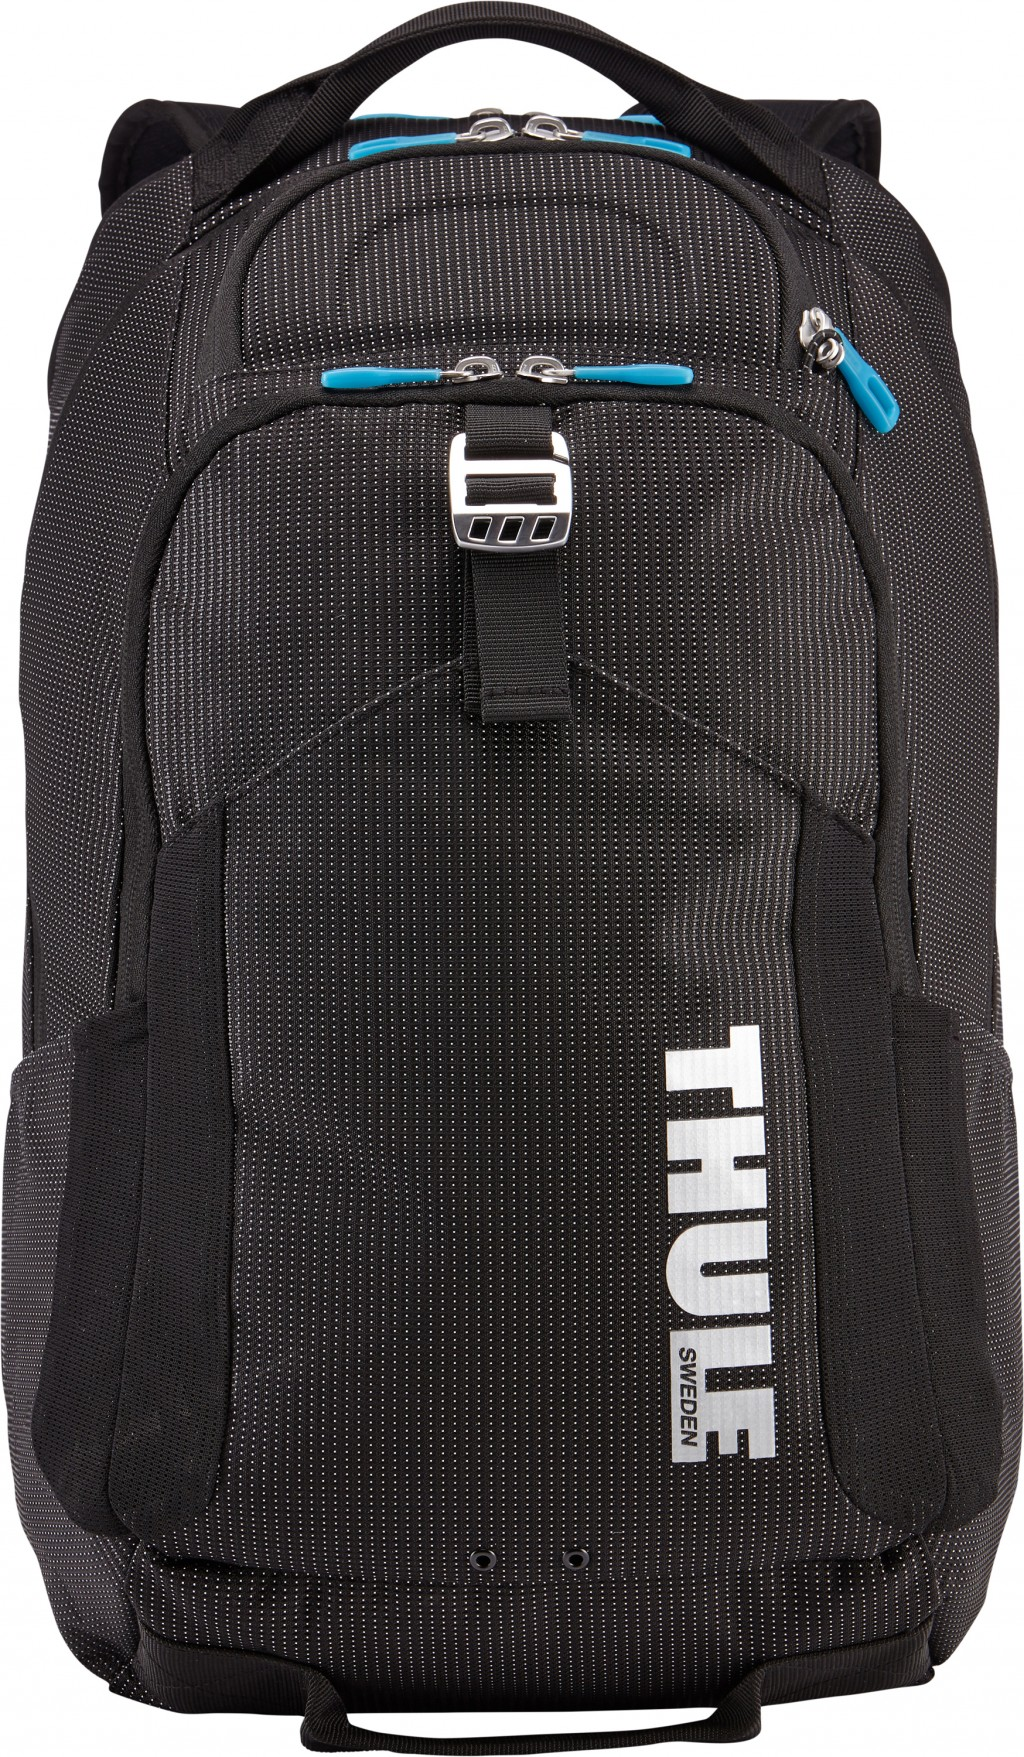 """Thule Crossover Professional Fits up to size 15 """", Black, Waterproof, Shoulder strap, Backpack"""